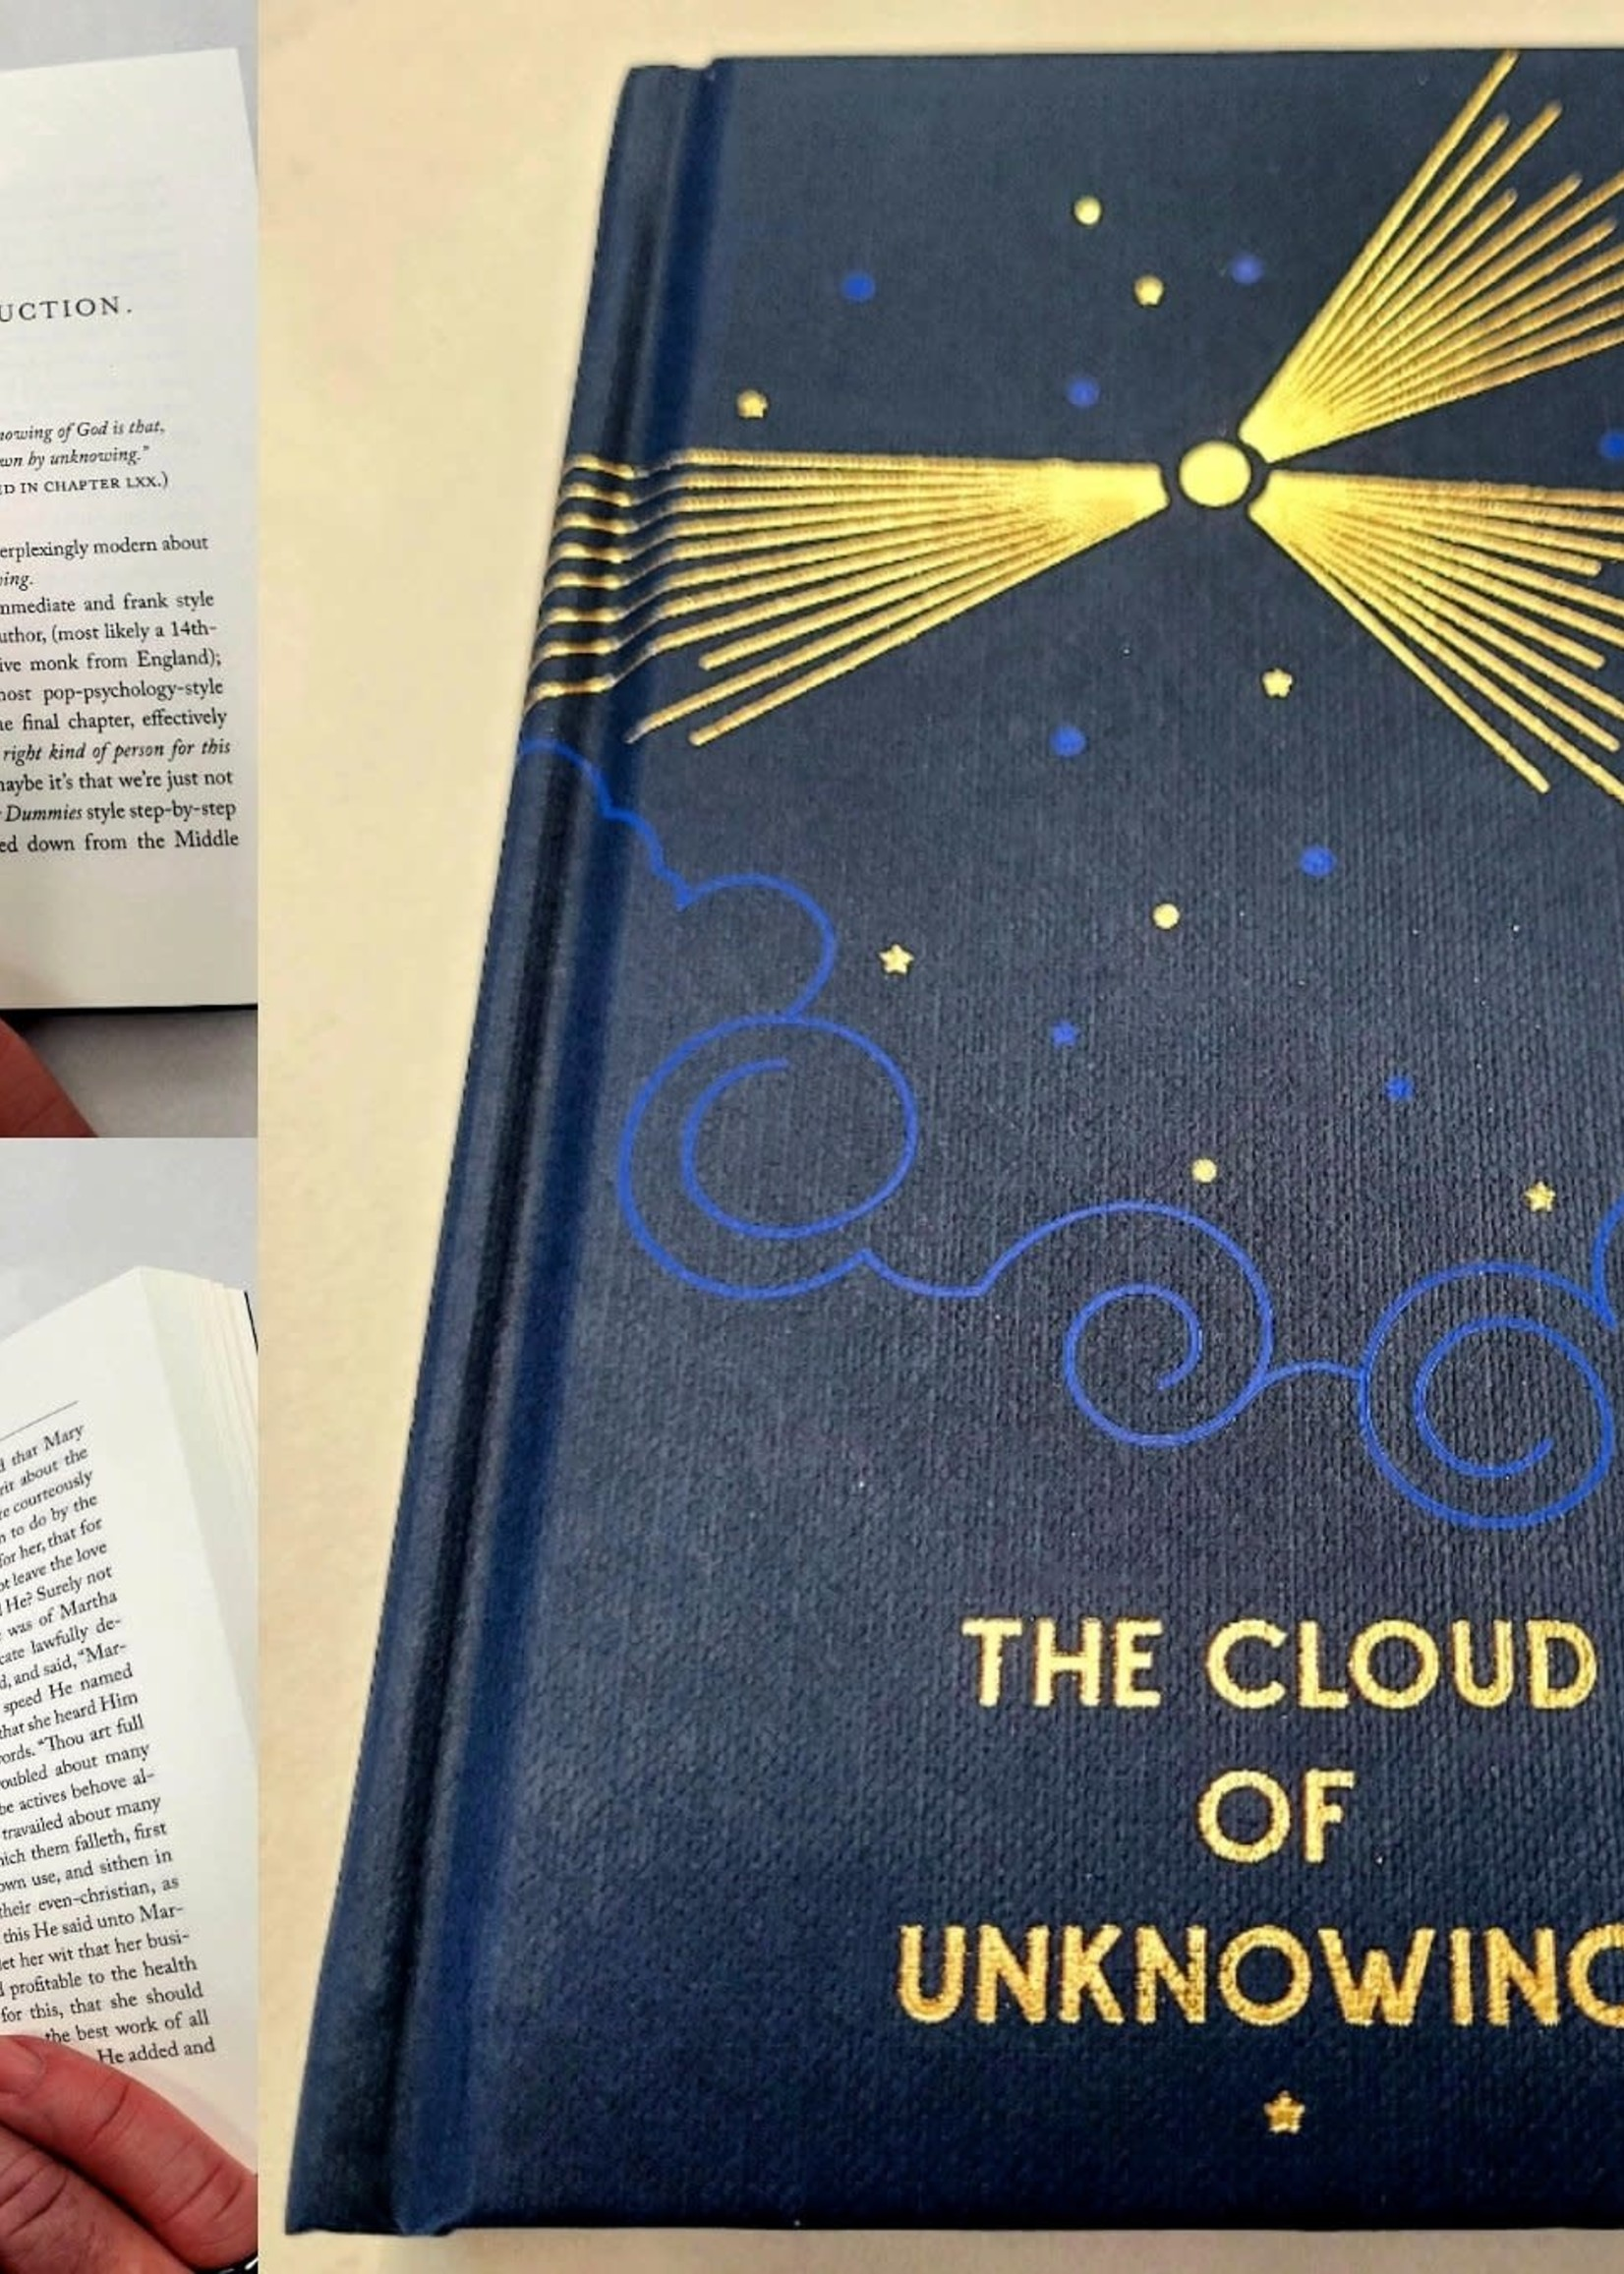 The Cloud of Unknowing Prefaced by Denis Poisson   Second edition